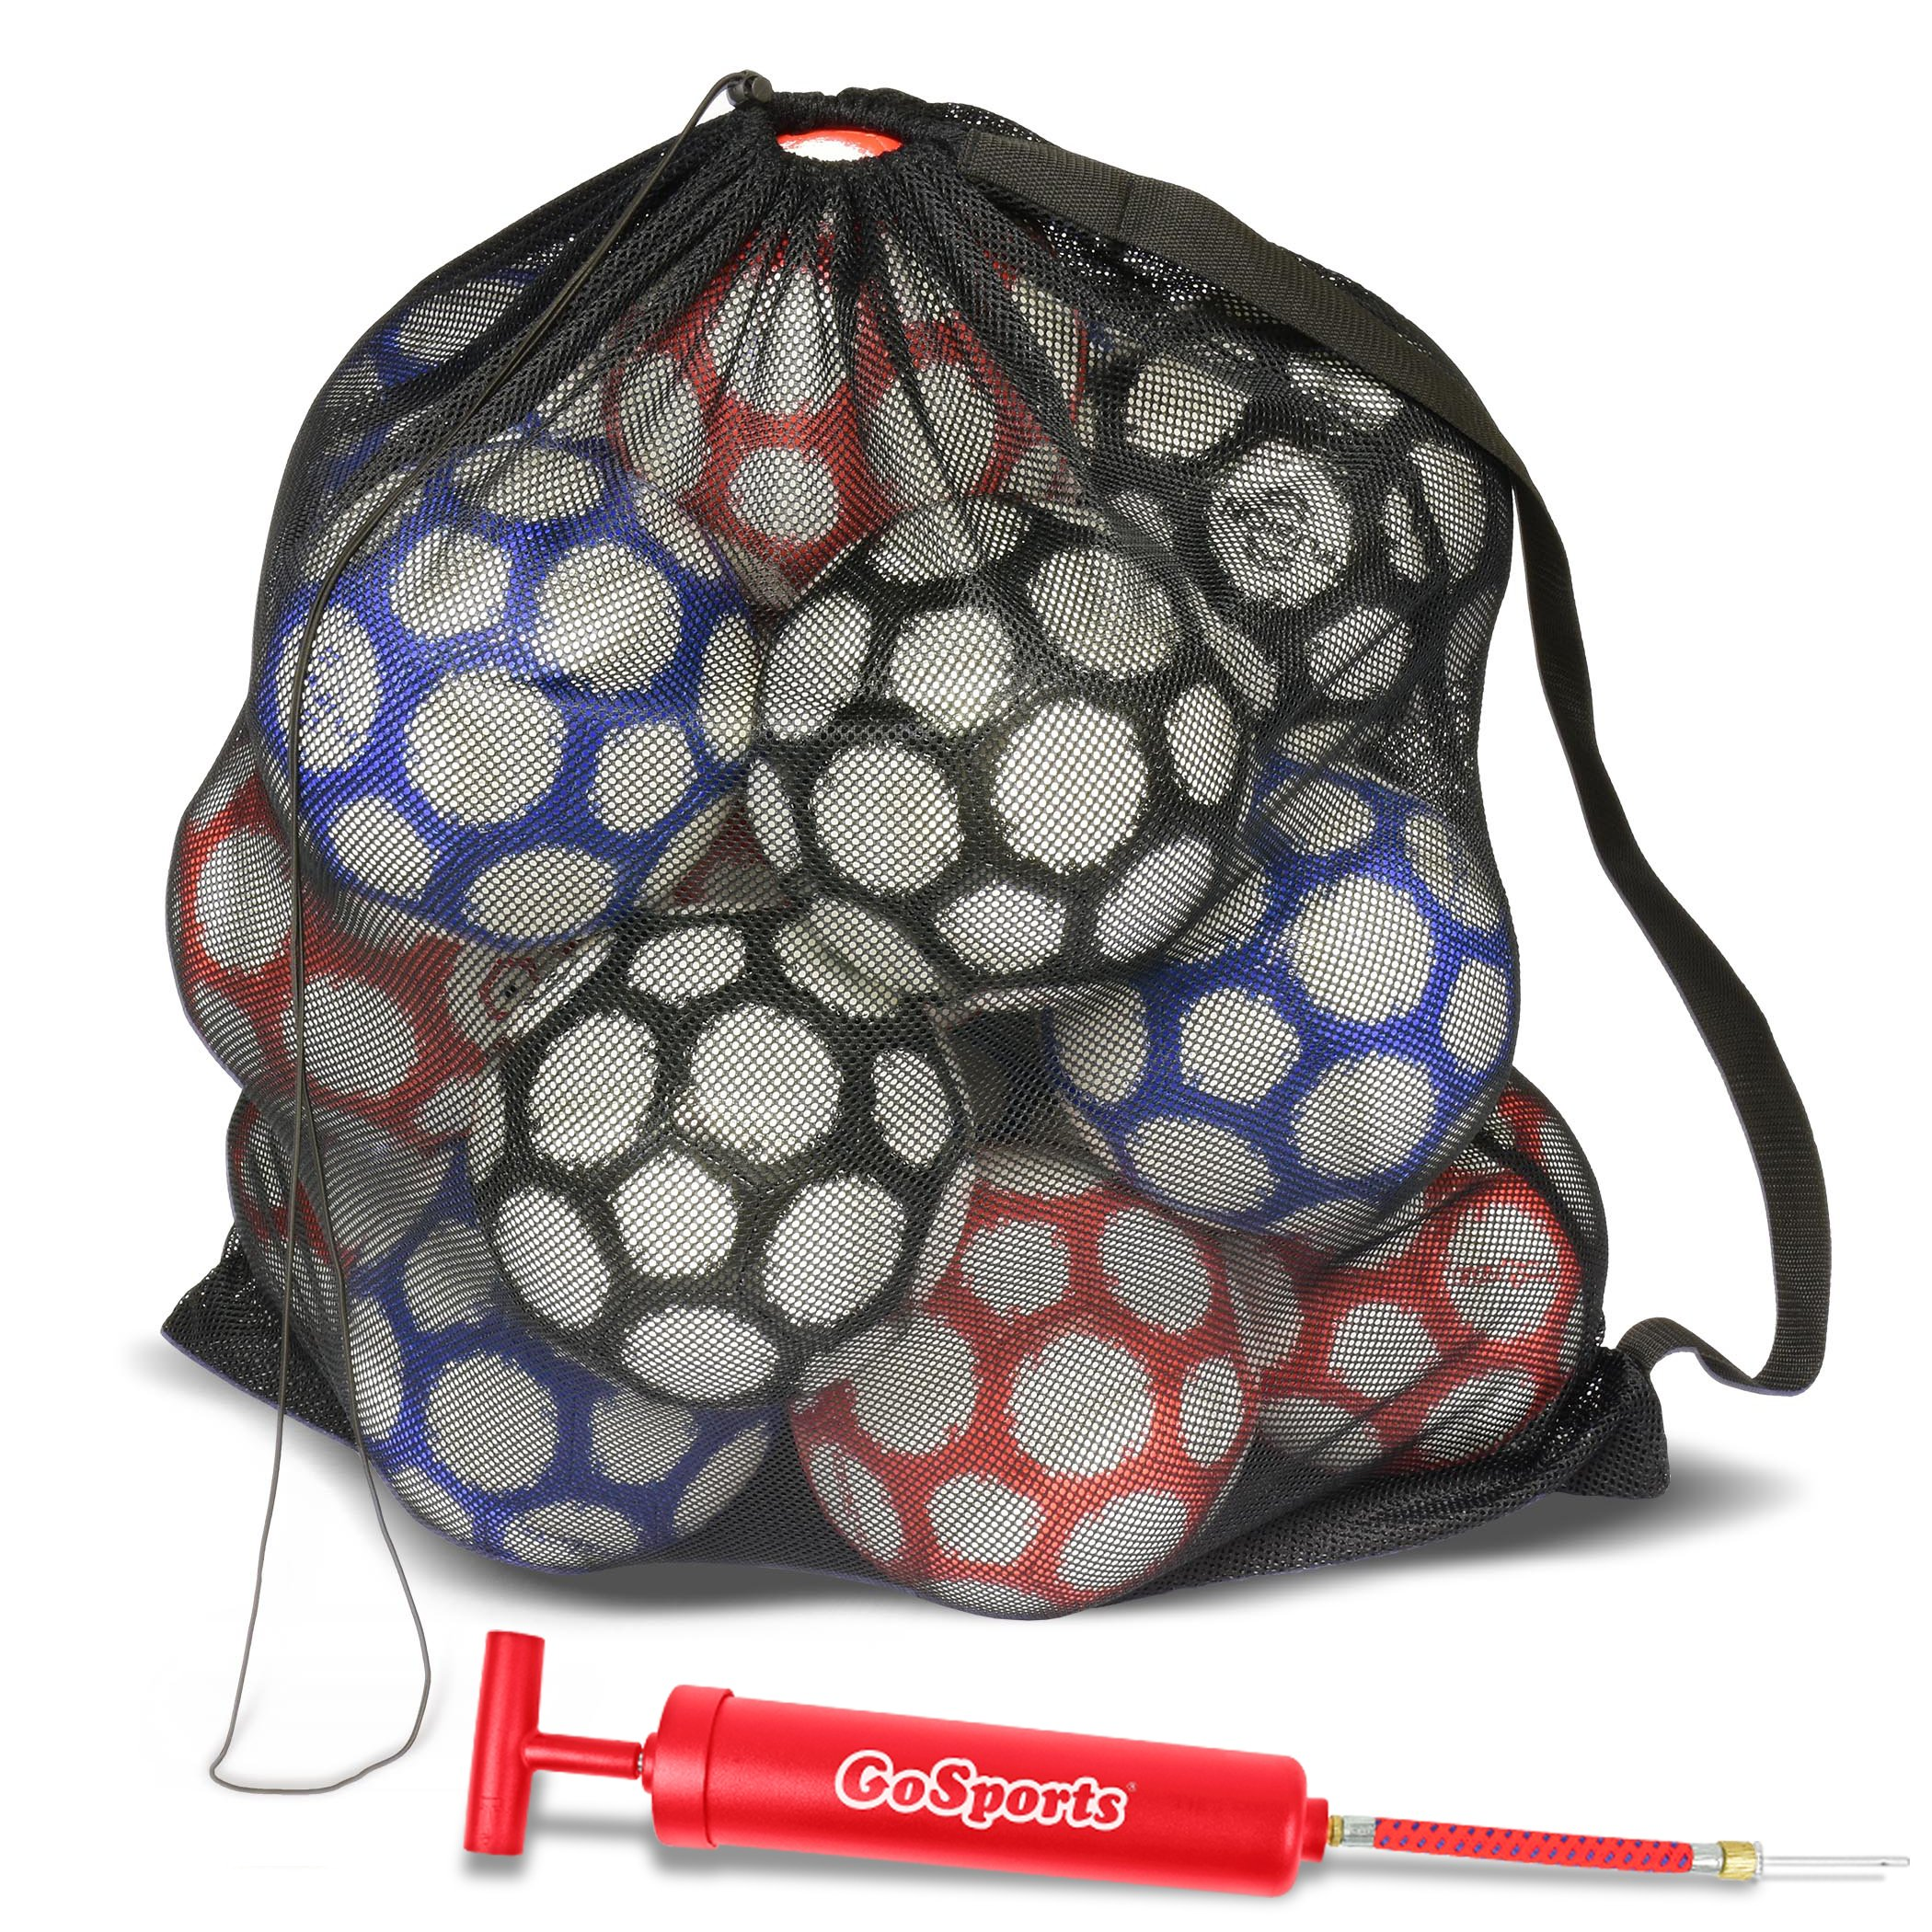 GoSports Premium Mesh Ball Bag with Sport Ball Pump, Black, Full Size